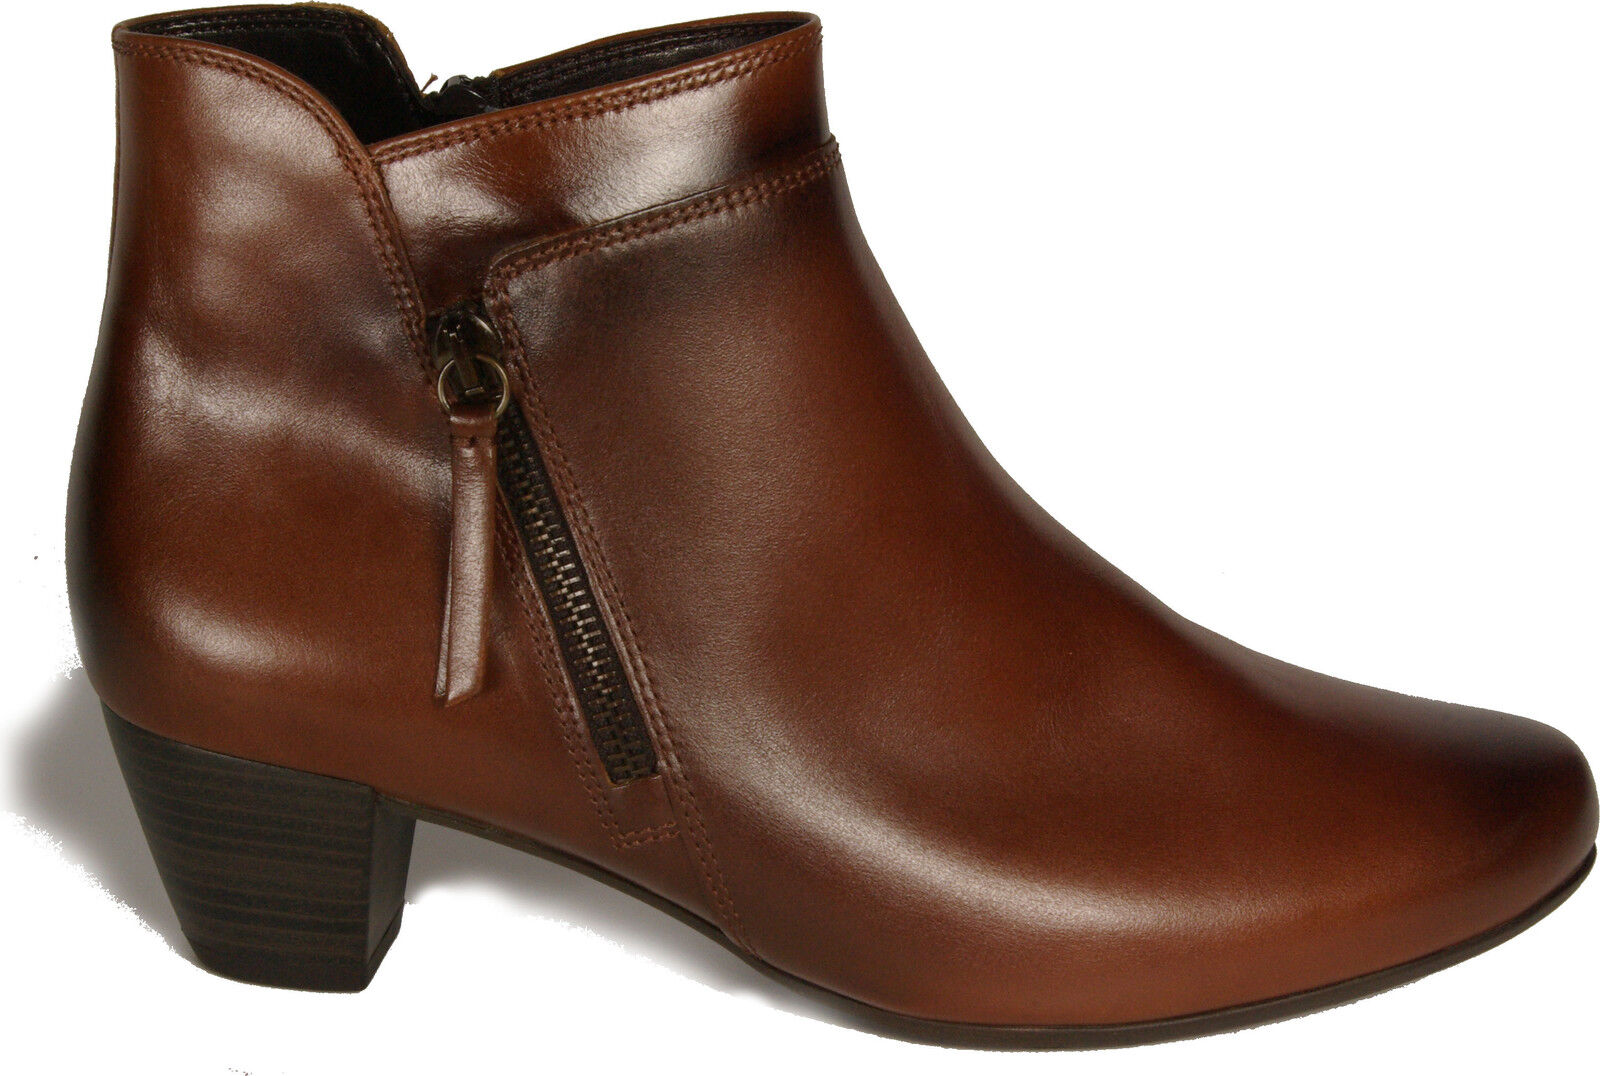 Gabor shoes Ankle Boots Brown Real Leather G Width NEW